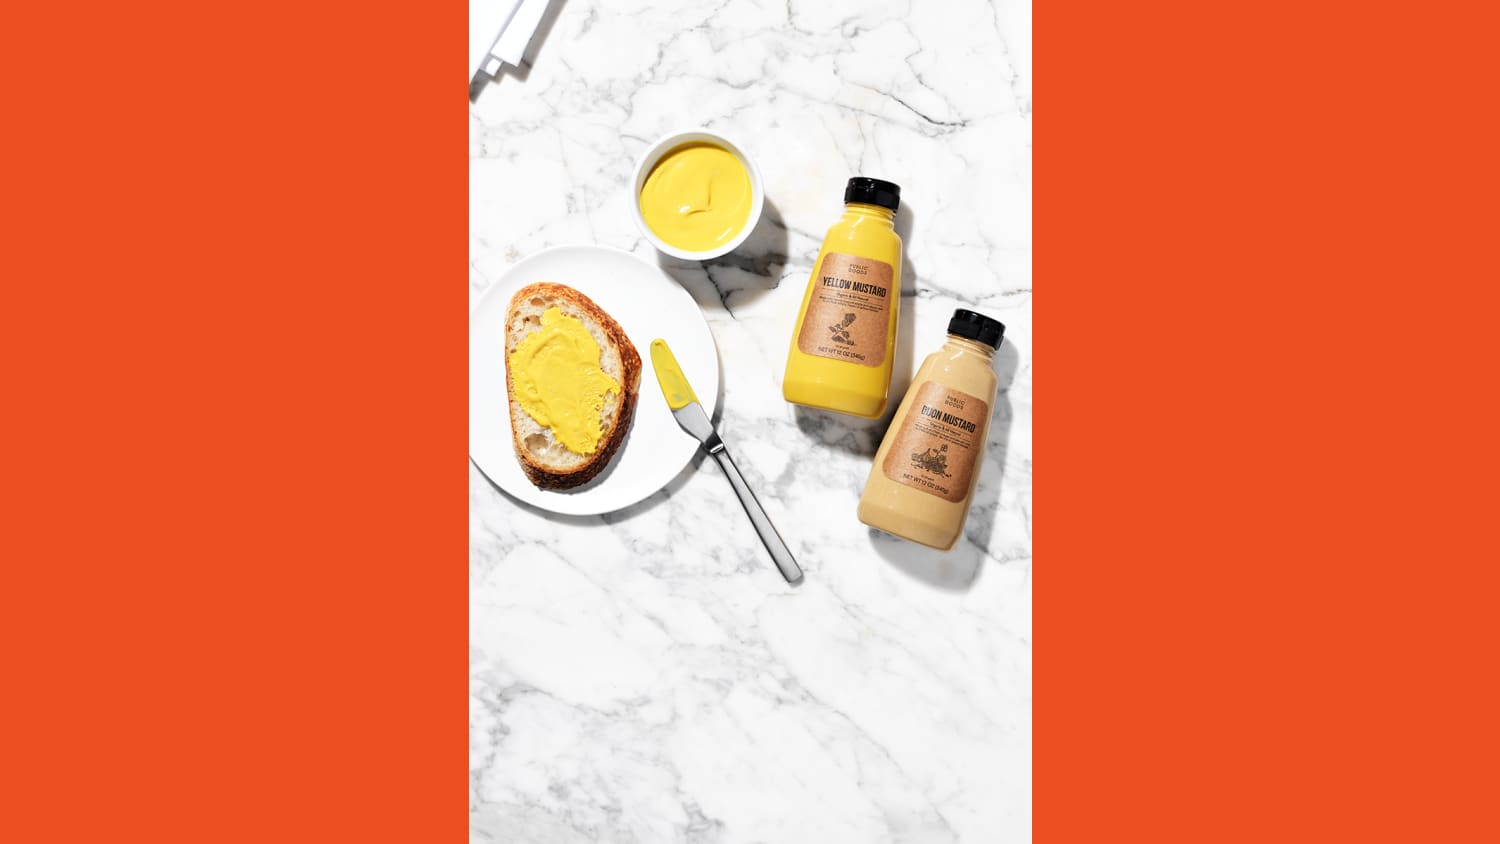 WEB Public Goods Lifestyle Mustard Extended